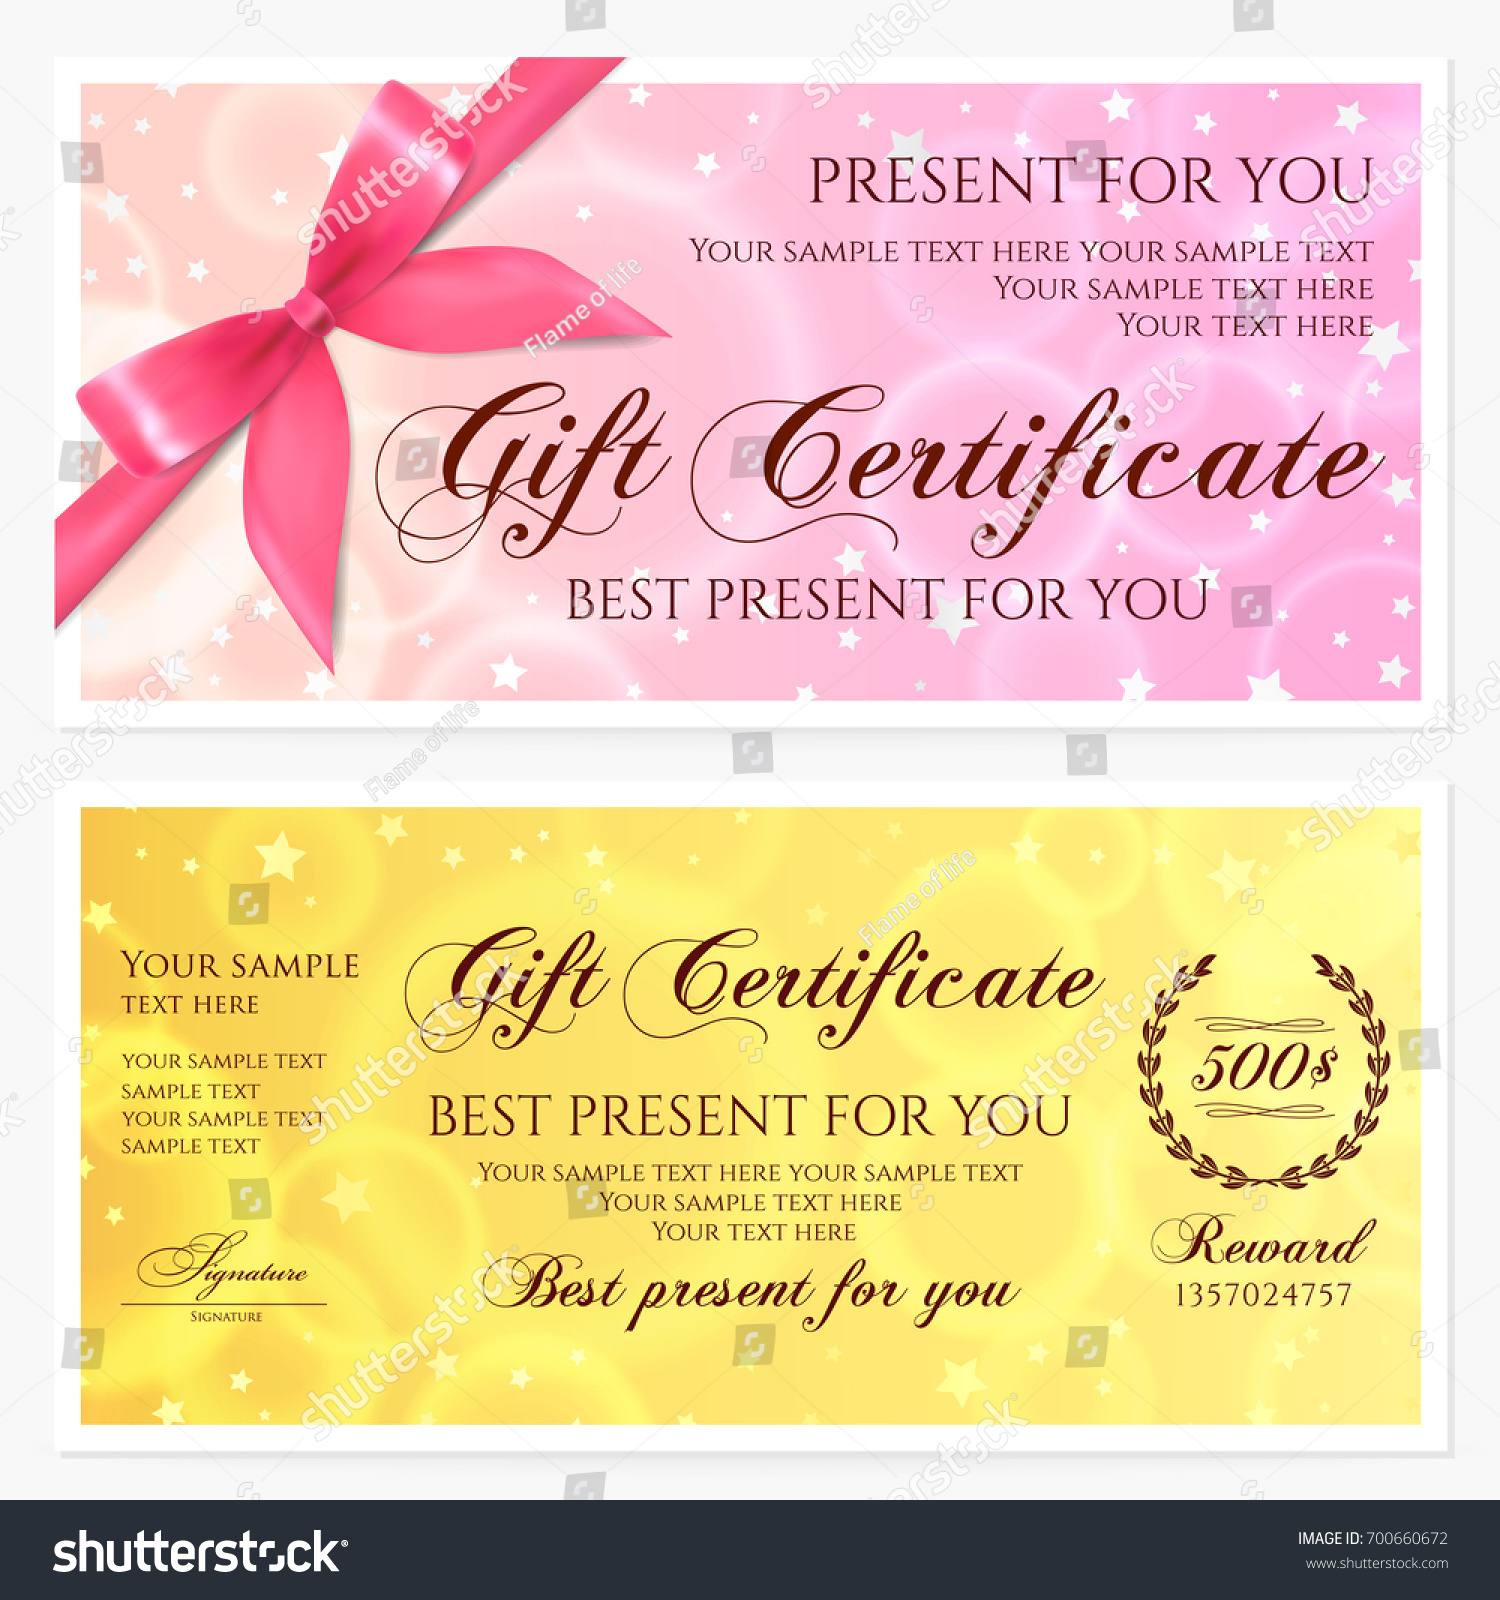 Gift Certificate Voucher Coupon Invitation Gift Stock Vector ...